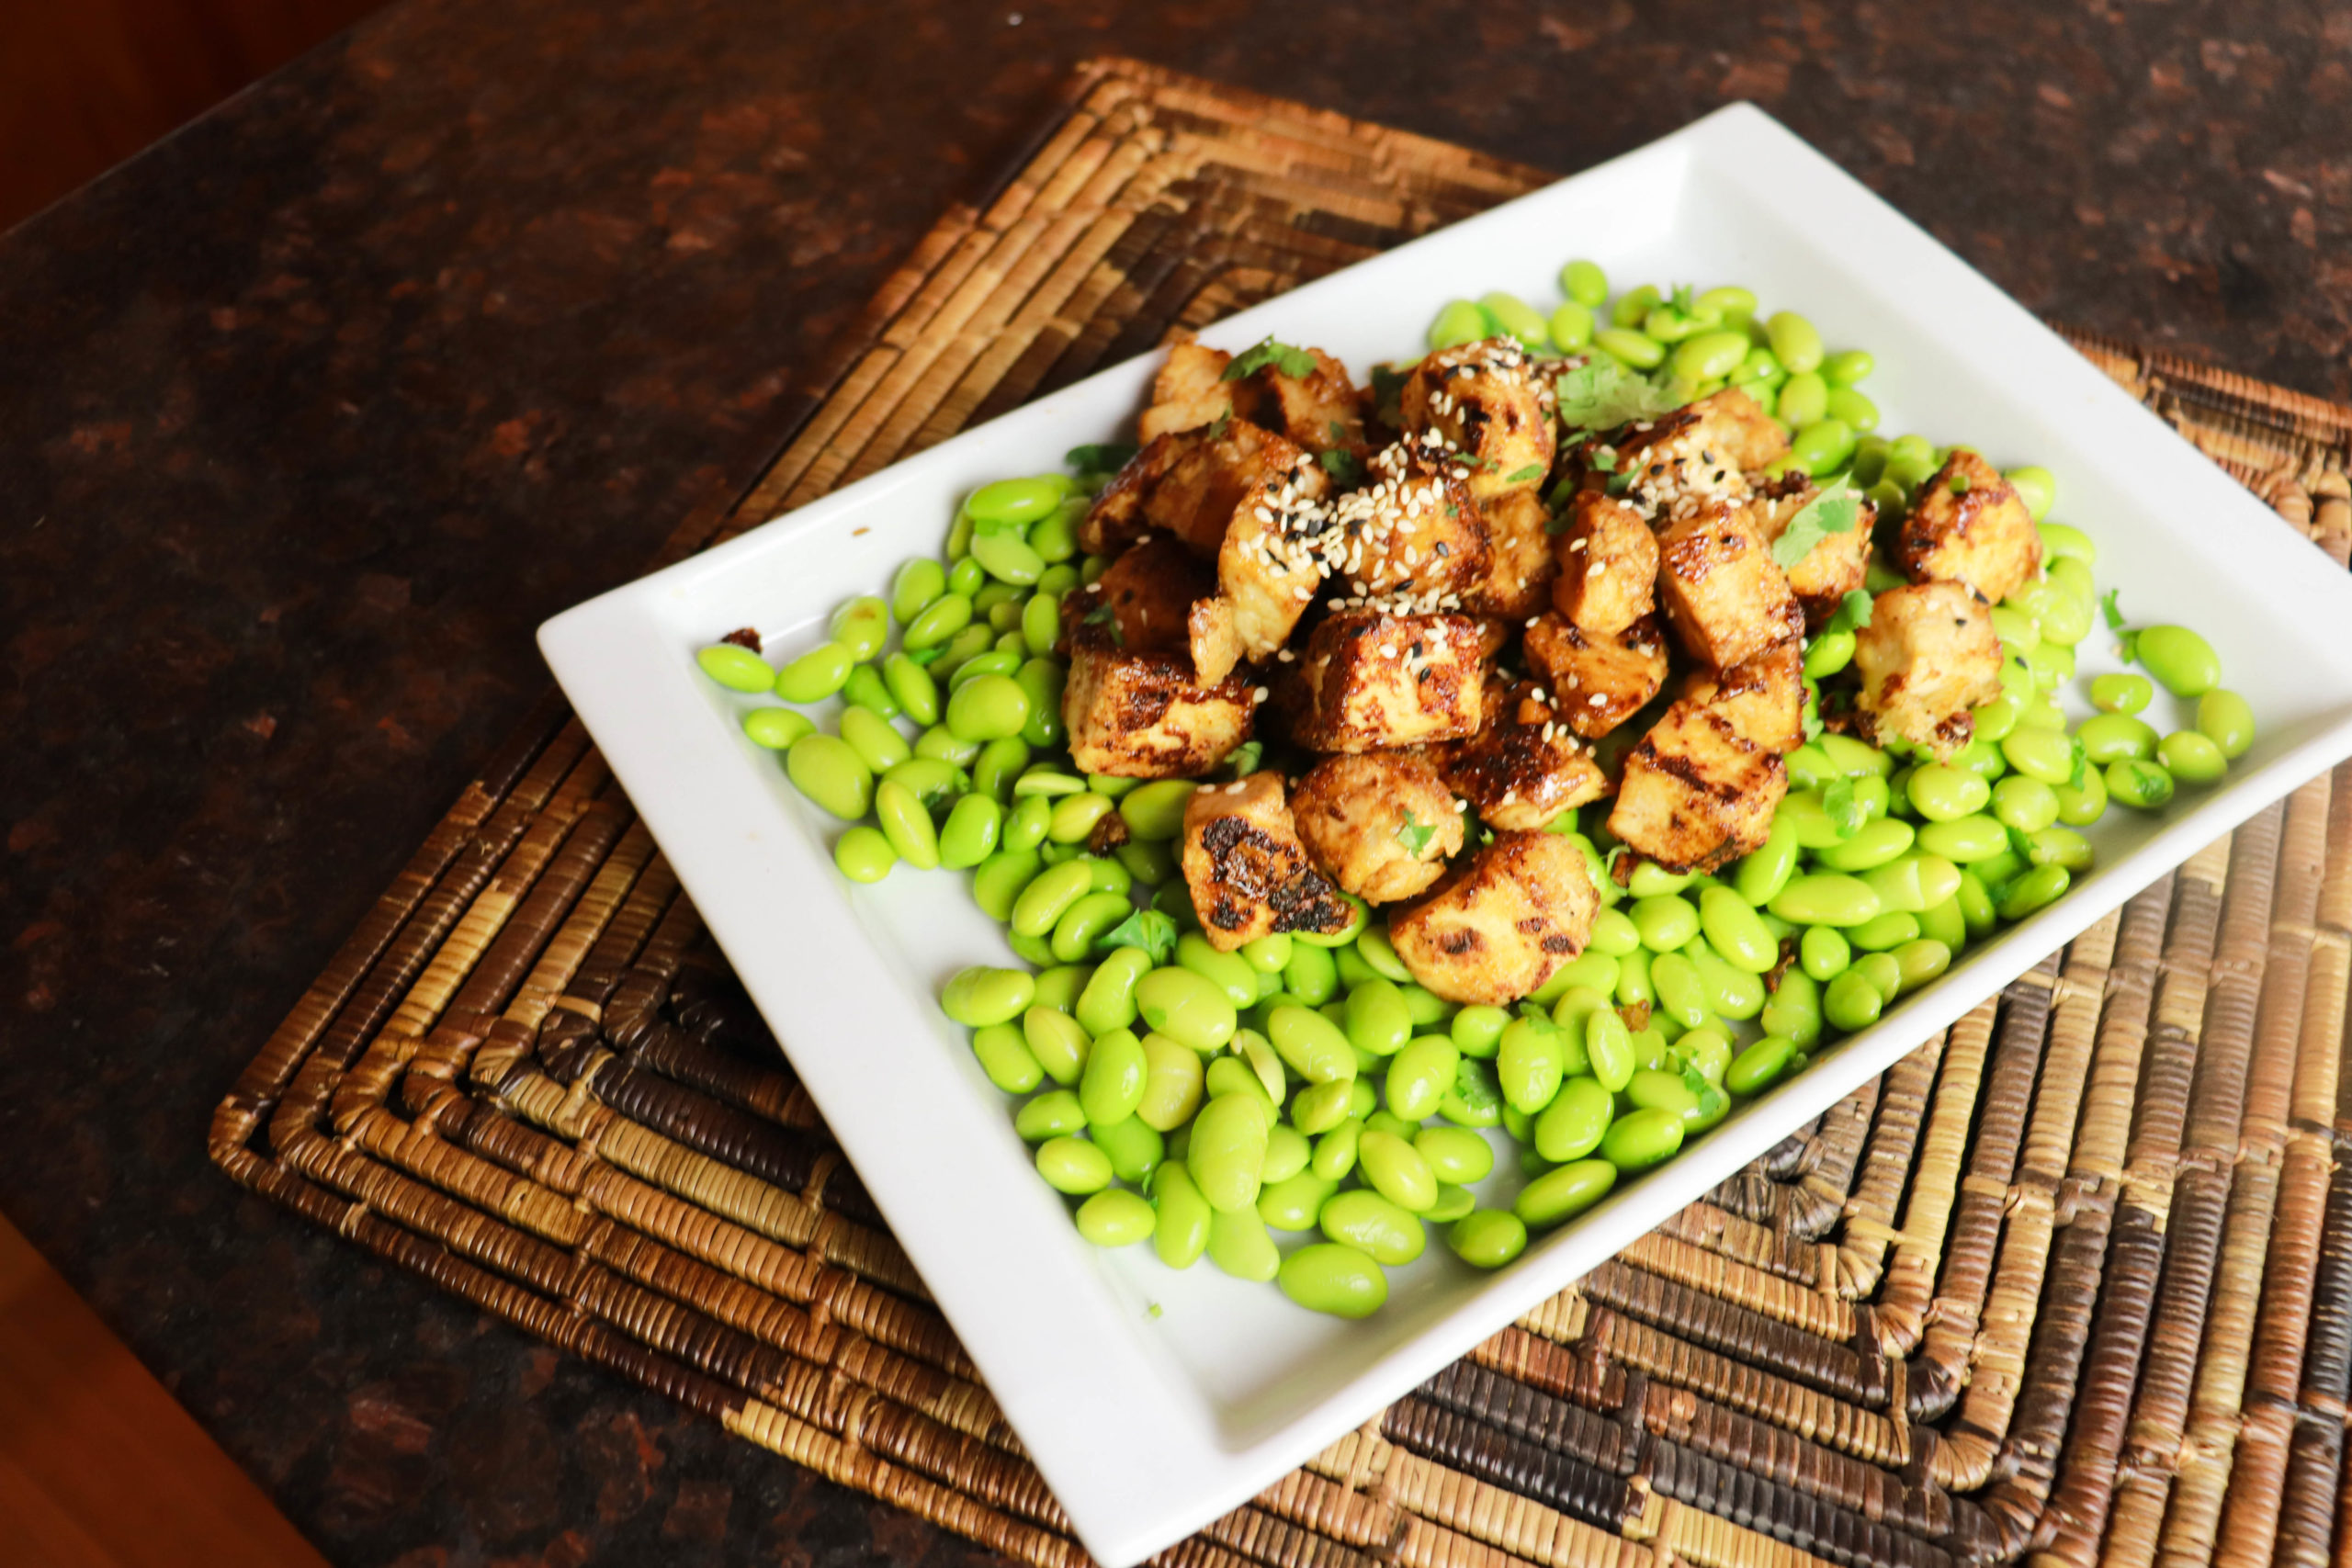 Crispy tofu with maple soy glaze over edamame